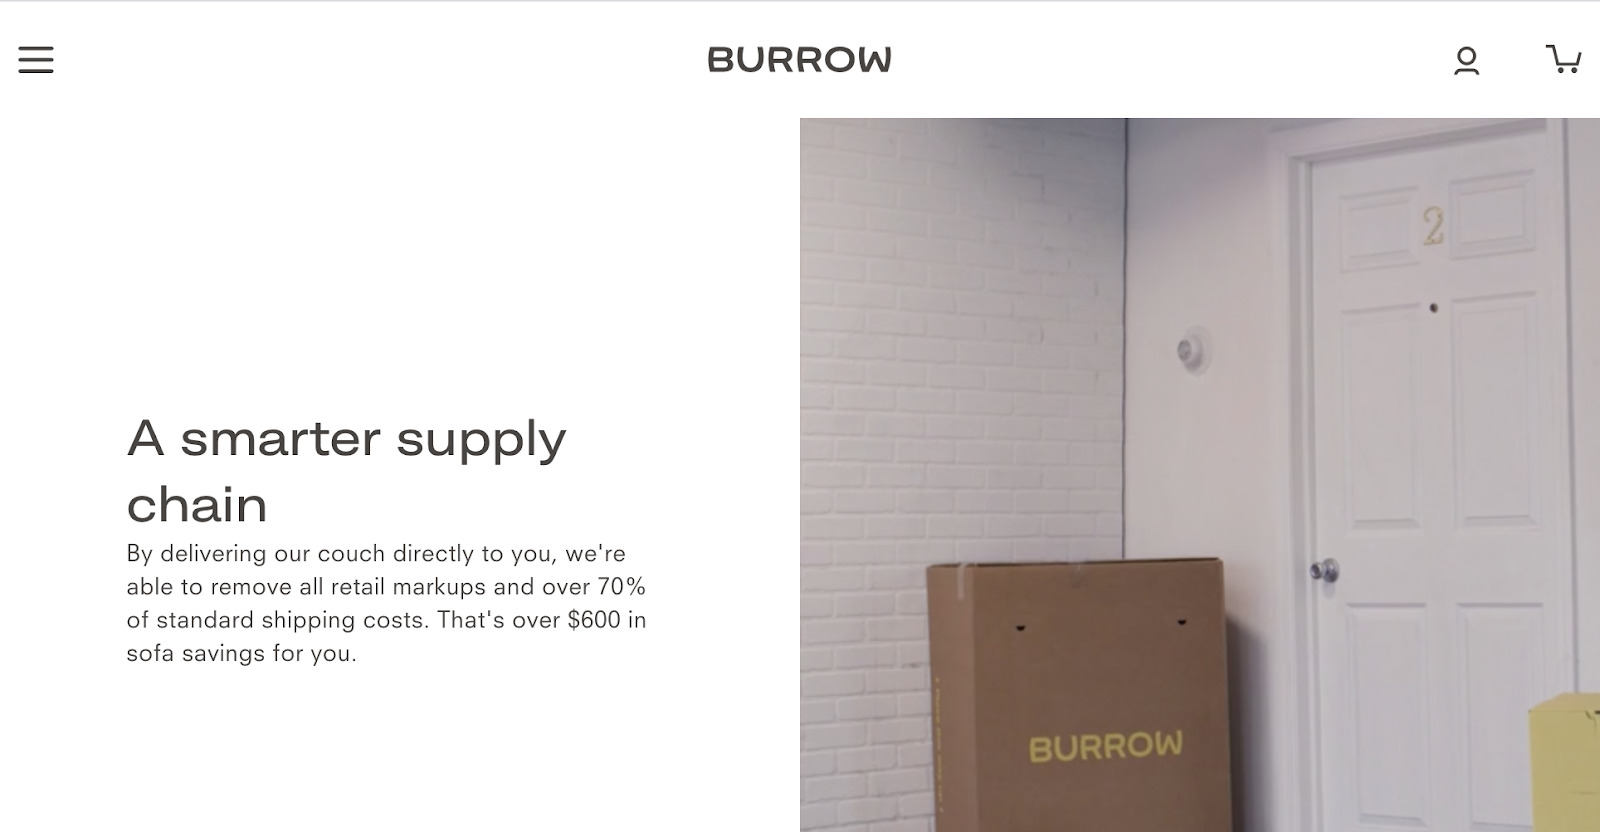 Burrow about us page